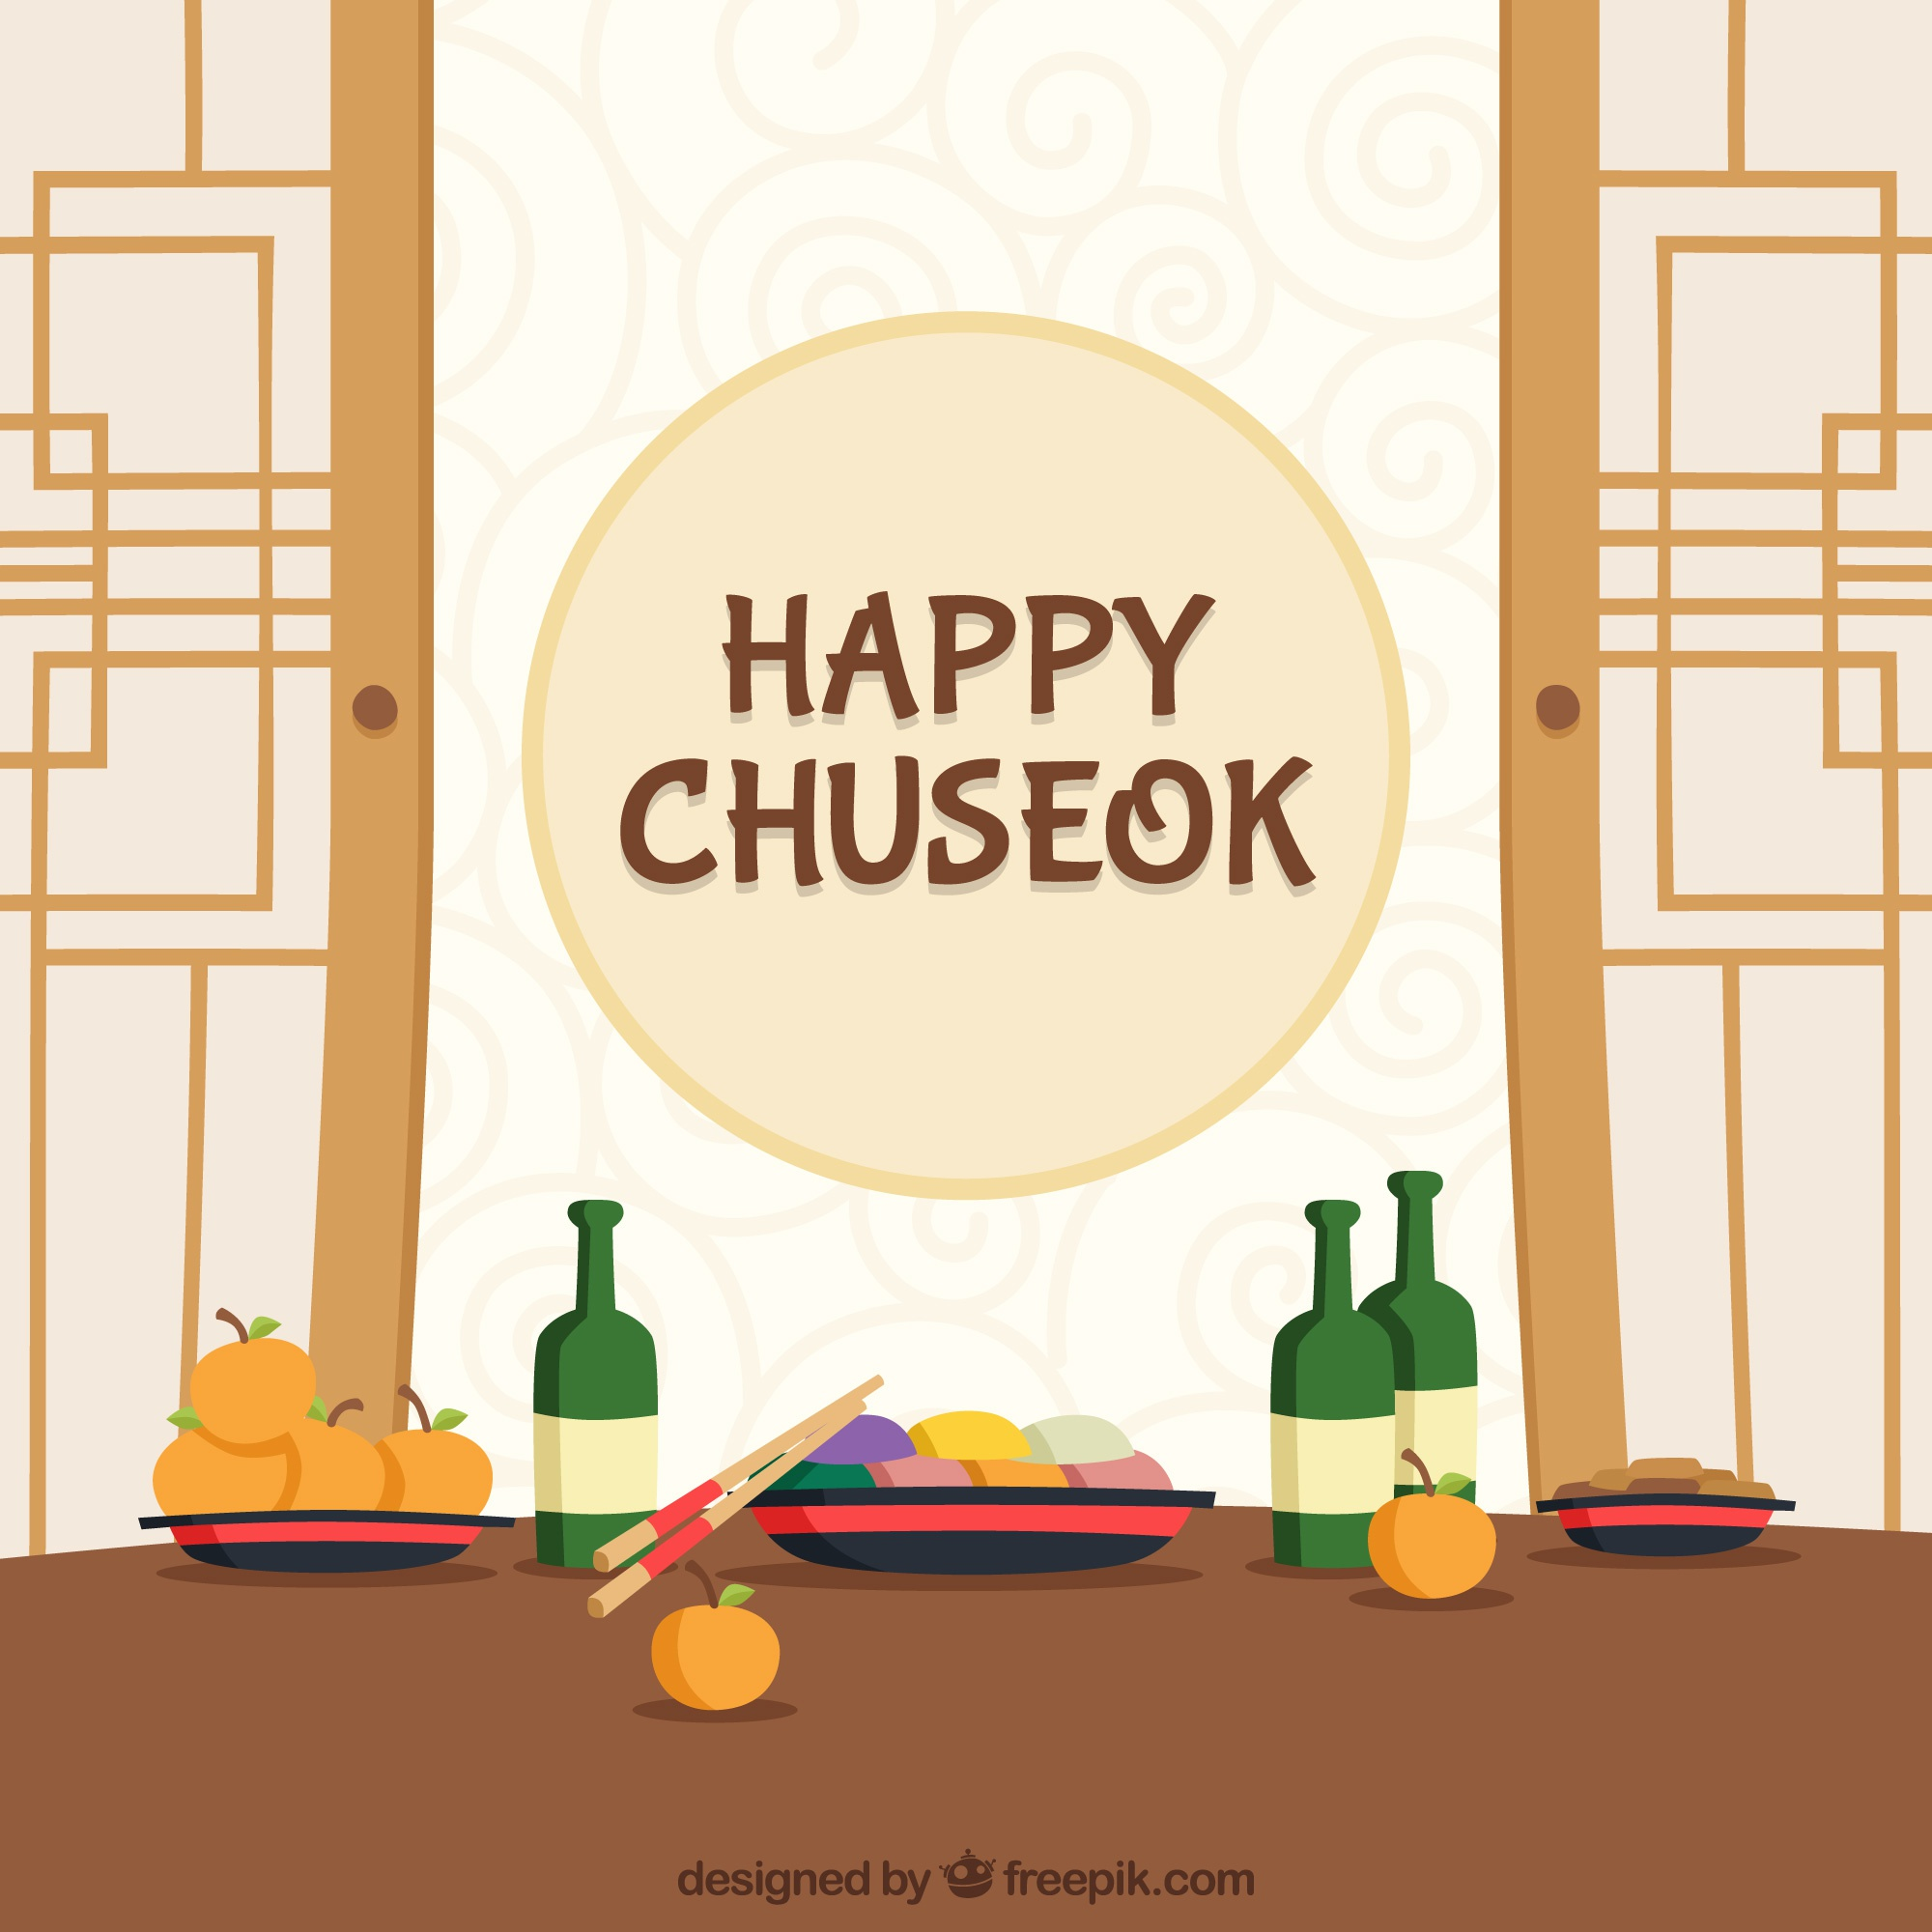 Traditional chuseok background in flat style